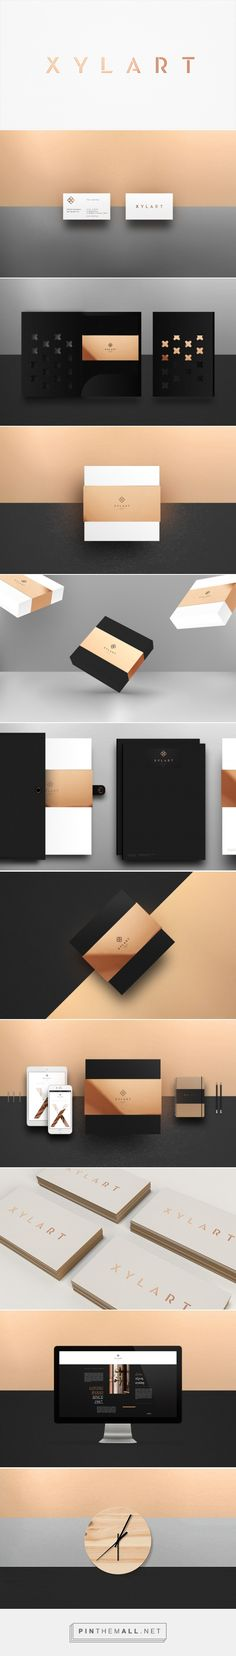 Xylart Wood Workshop Branding by Angelos Botsis   Fivestar Branding Agency – Design and Branding Agency & Curated Inspiration Gallery